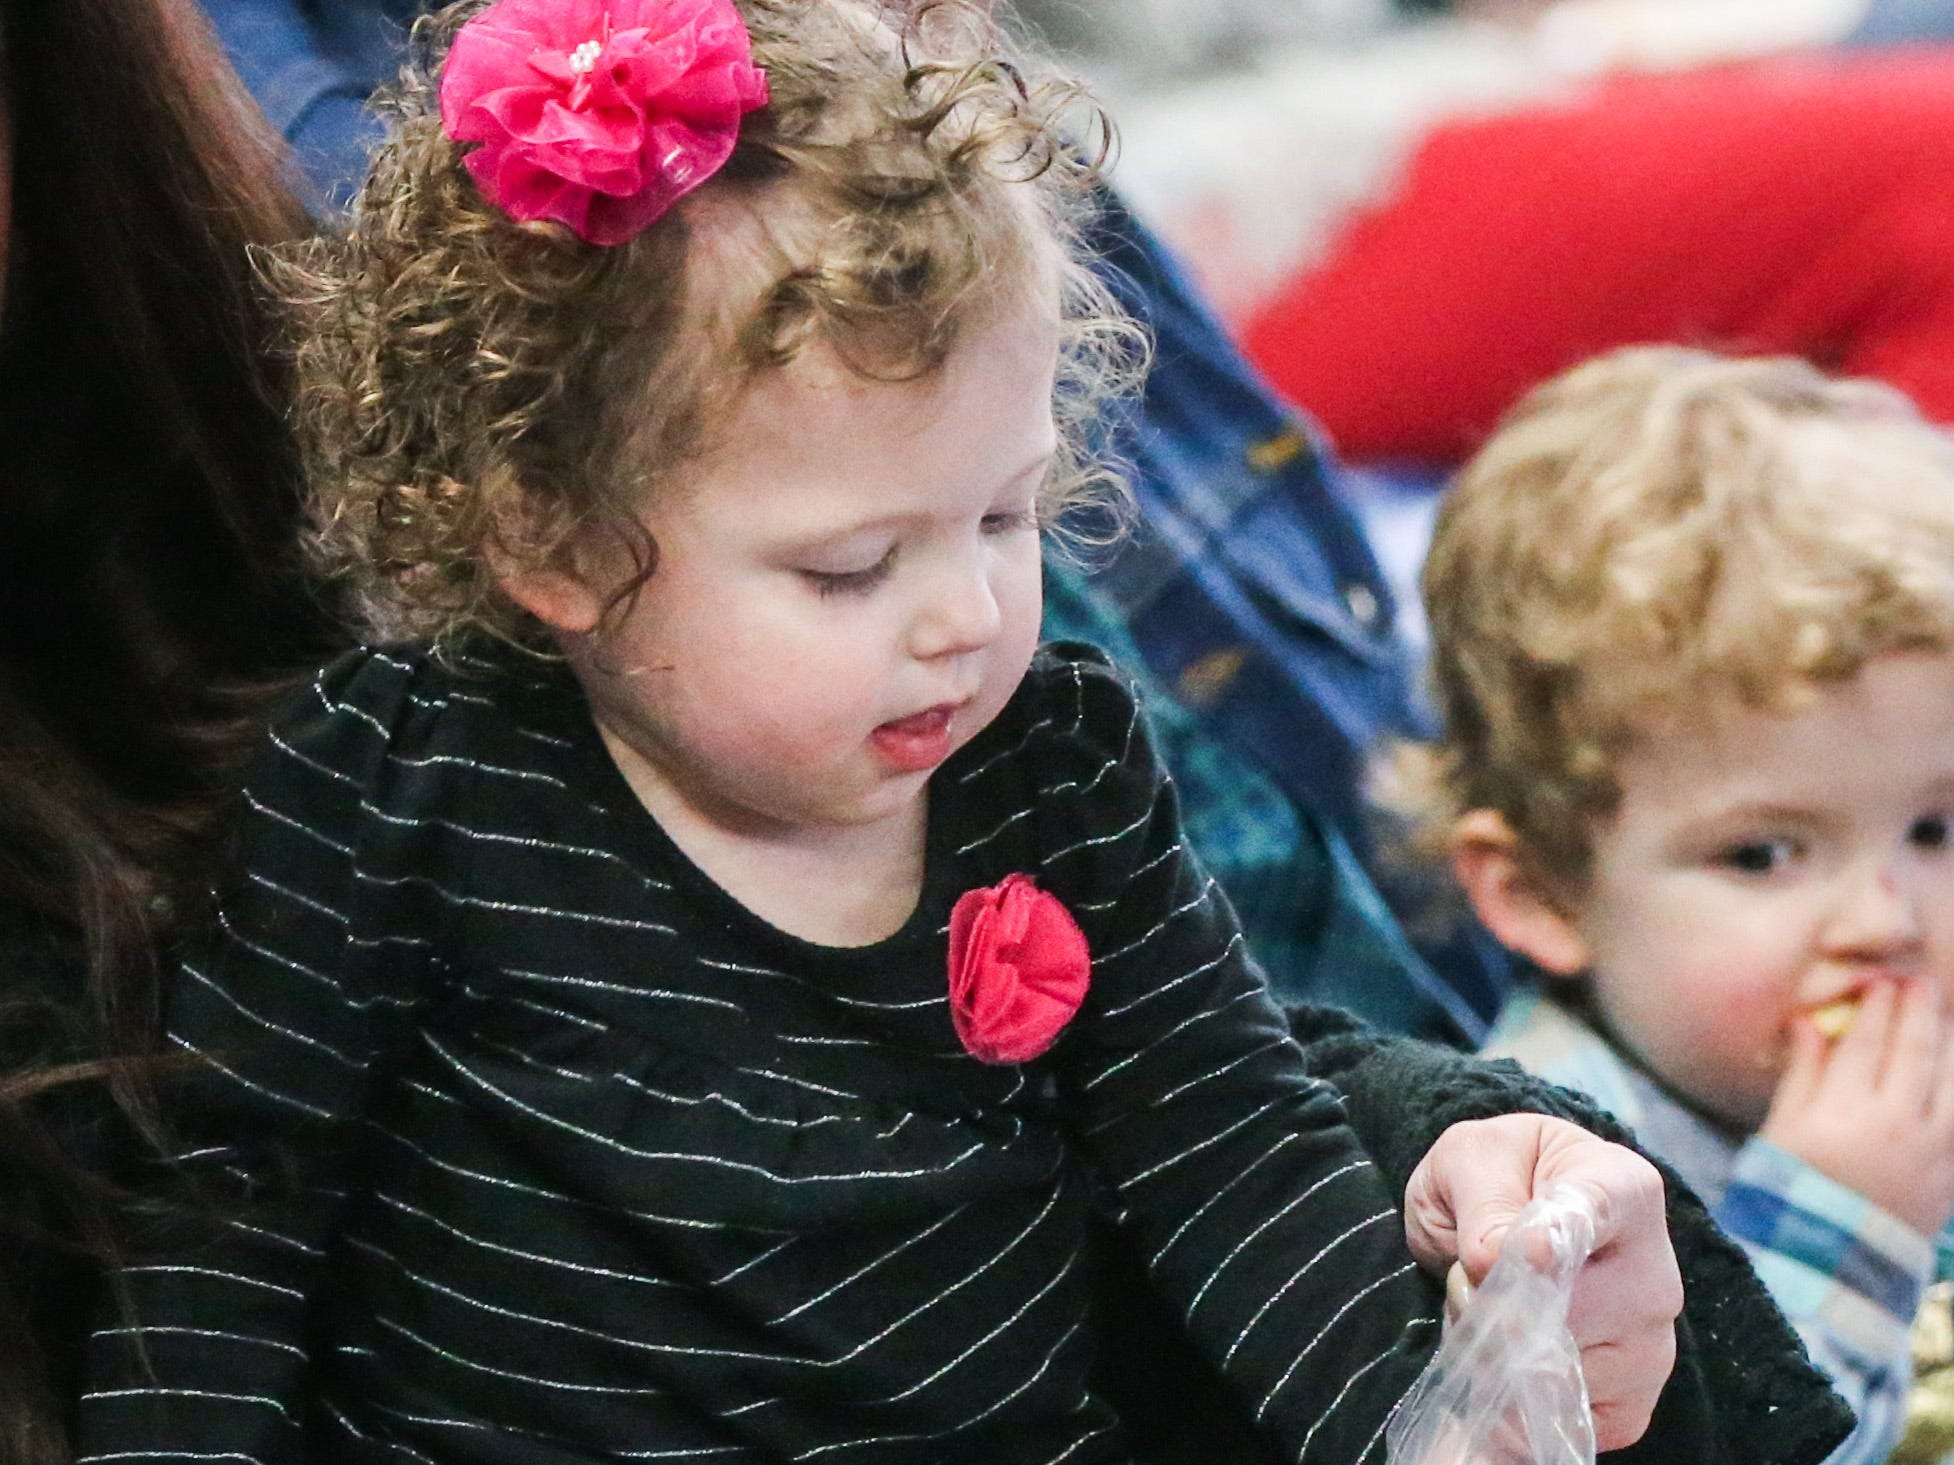 Kensleigh Phillips, 2, center, digs into the popcorn before the San Angelo Stock Show & Rodeo show Saturday, Feb. 9, 2019, at Foster Communications Coliseum.